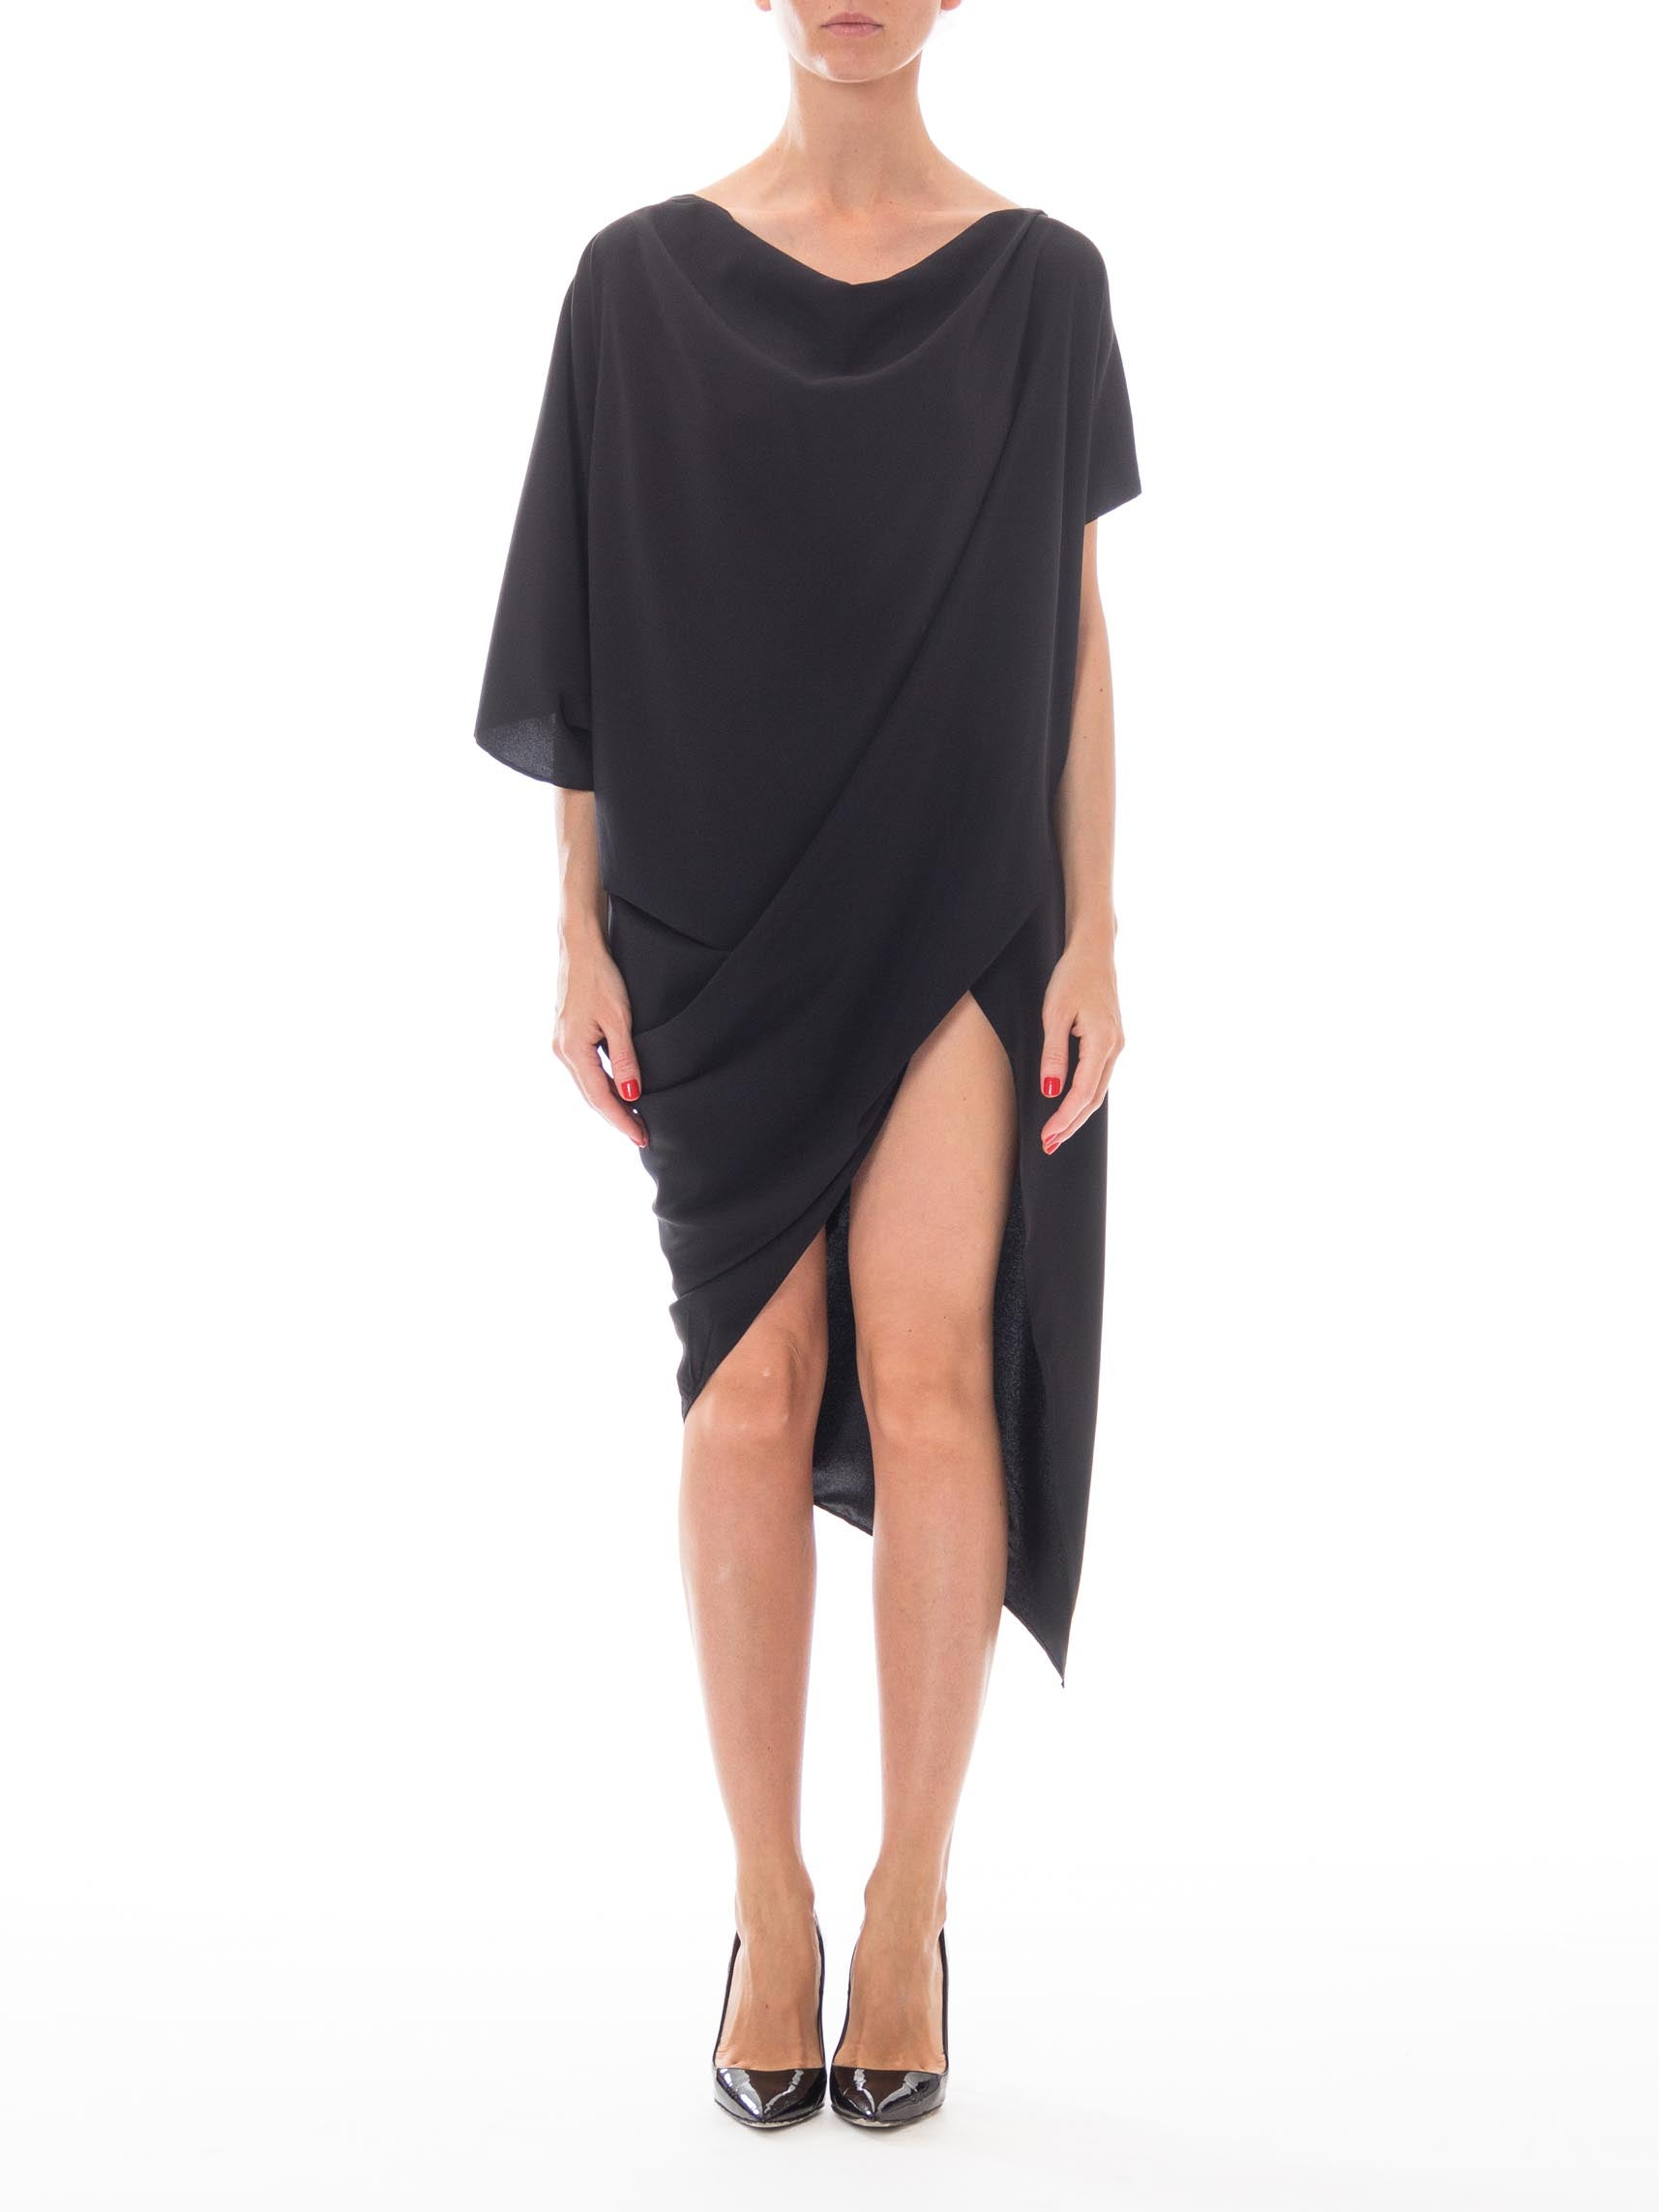 Morphew Lab Original Design Avant-Garde 1990s Style Black Silk Charmeause Draped Minimalist Dress w/ Asymmetrical Hem